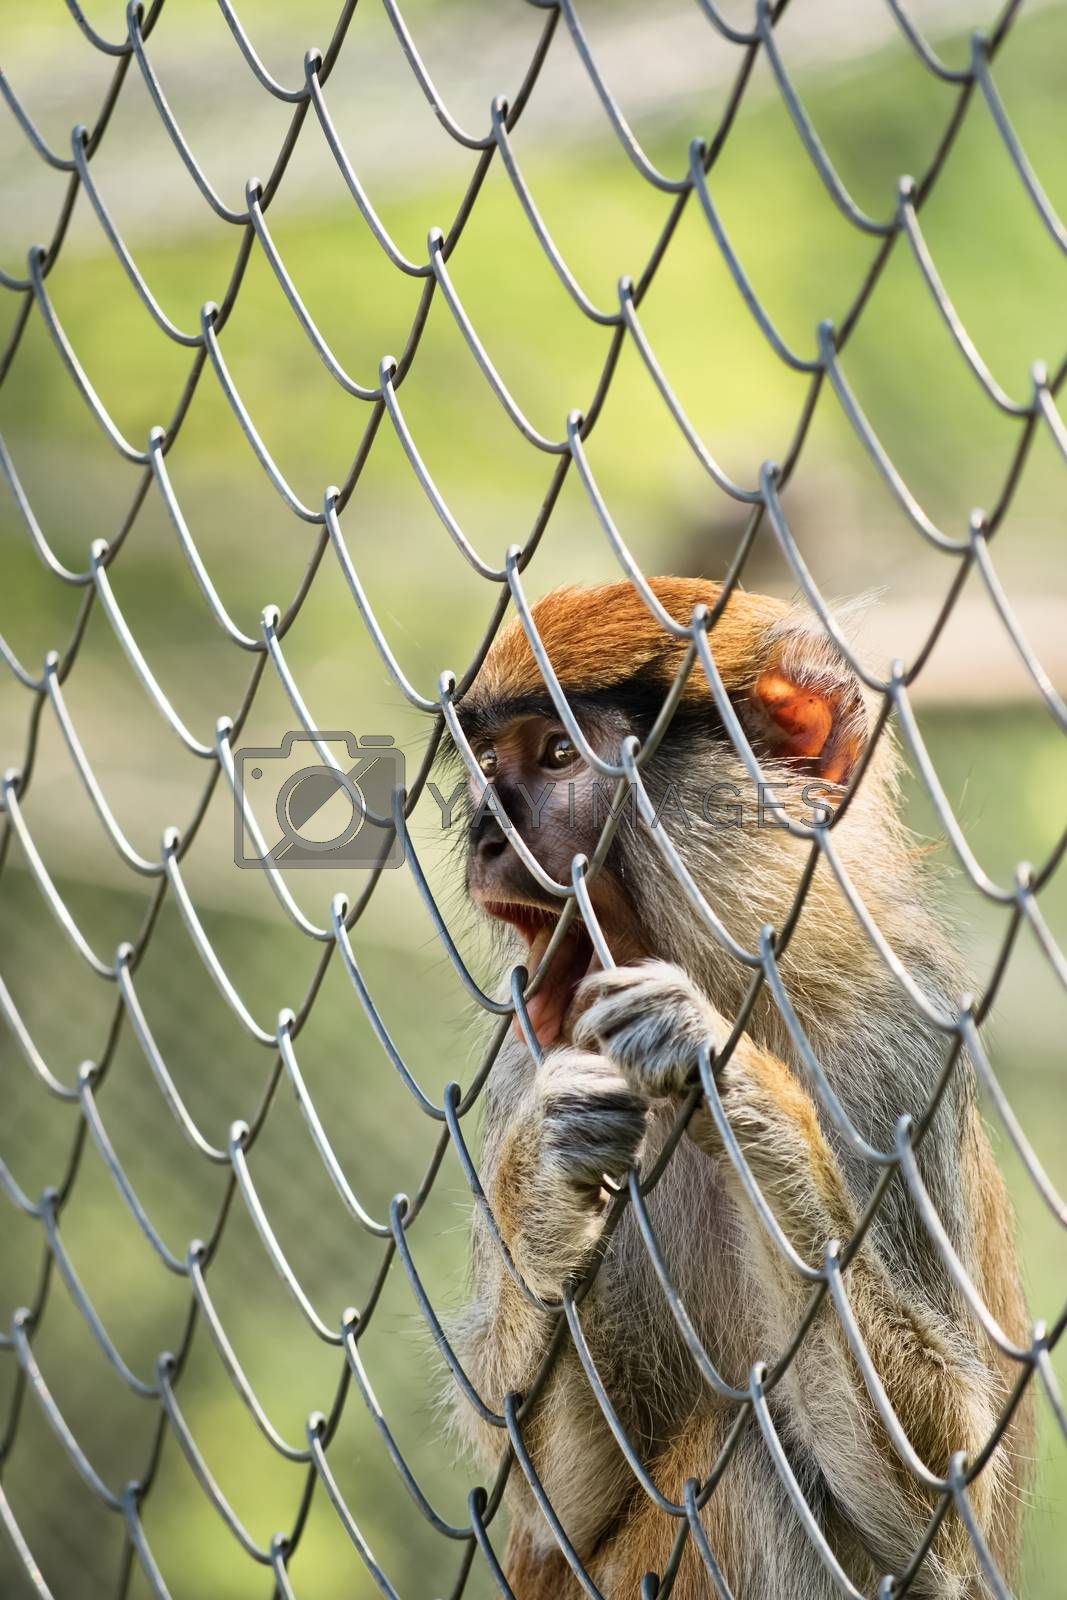 Close up shot of a small caged monkey holding the fence and looking far away.